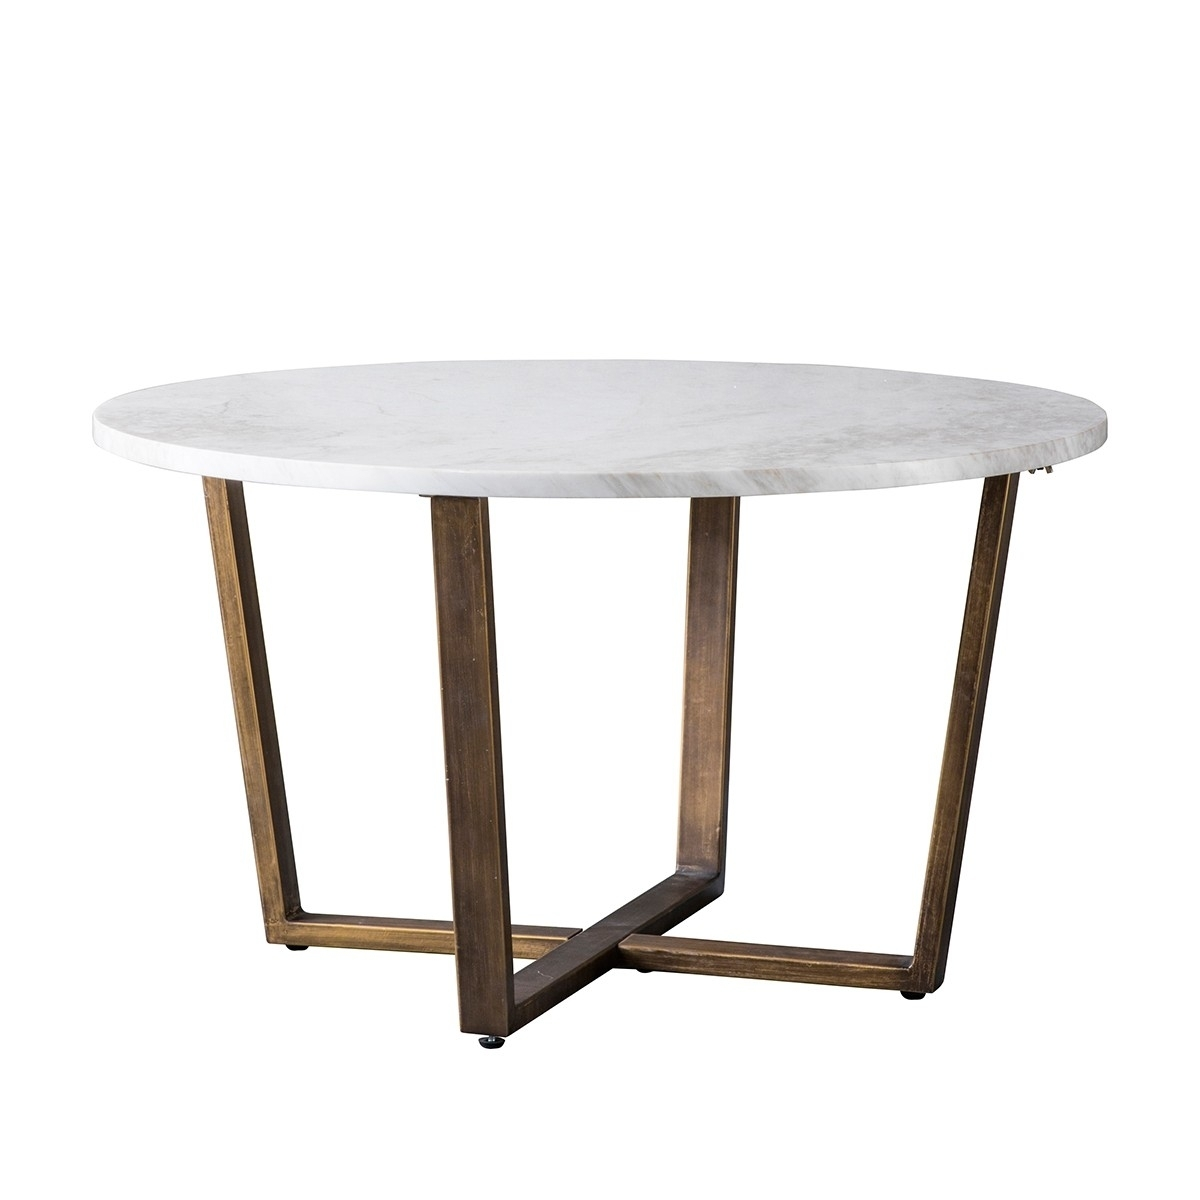 Pavilion Chic Coffee Table Cleo In White Marble | Pavilion Broadway with regard to Parker Oval Marble Coffee Tables (Image 27 of 30)